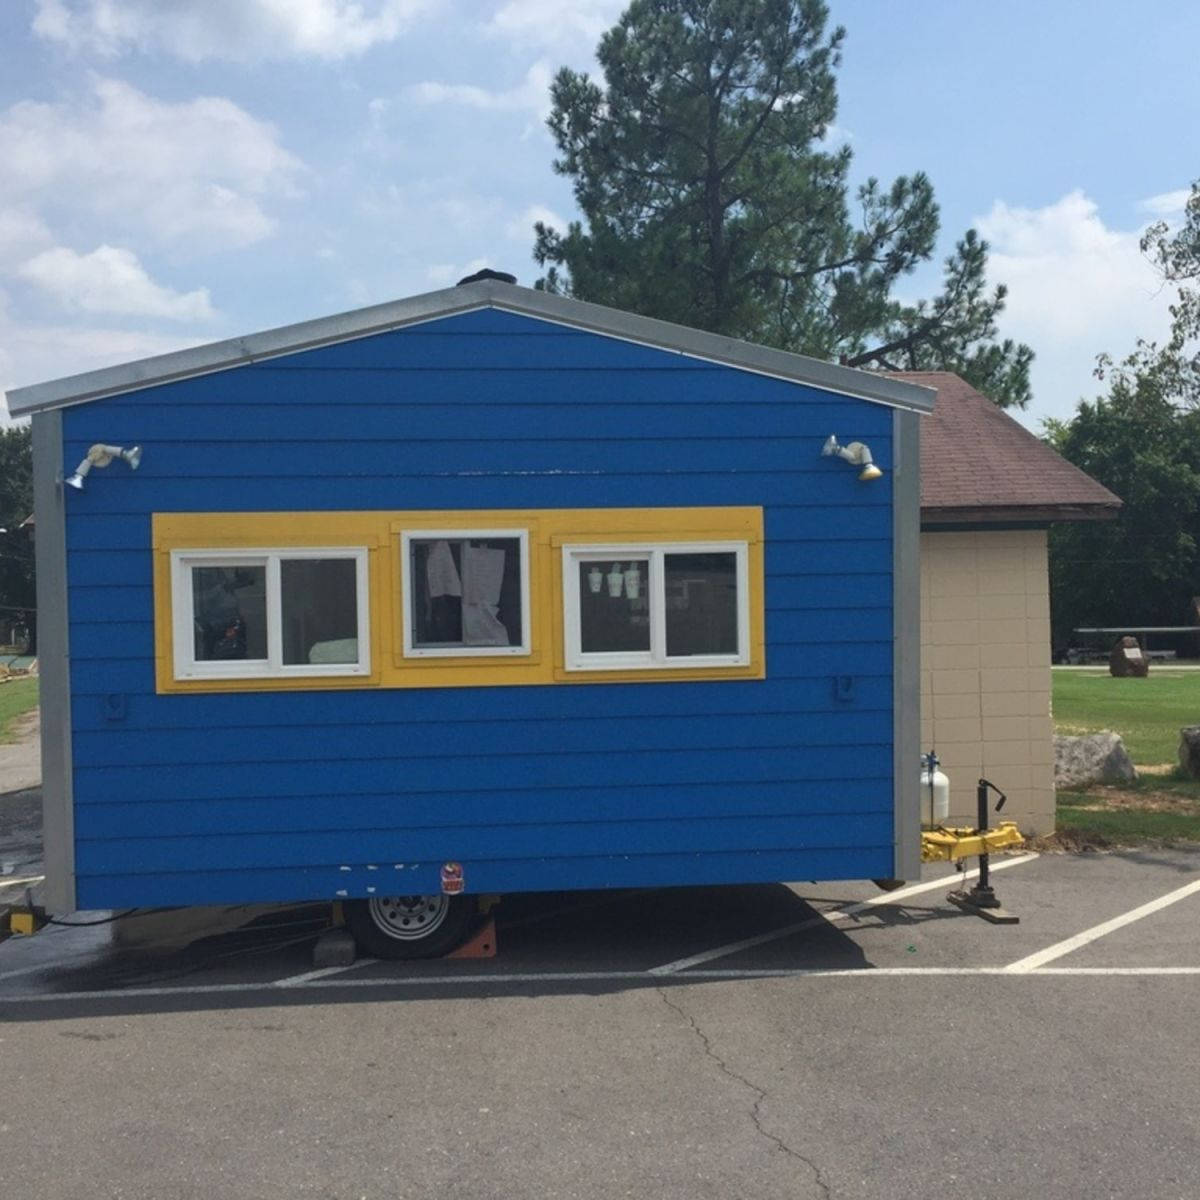 Tiny Home Designs: Tiny House For Sale In Benton